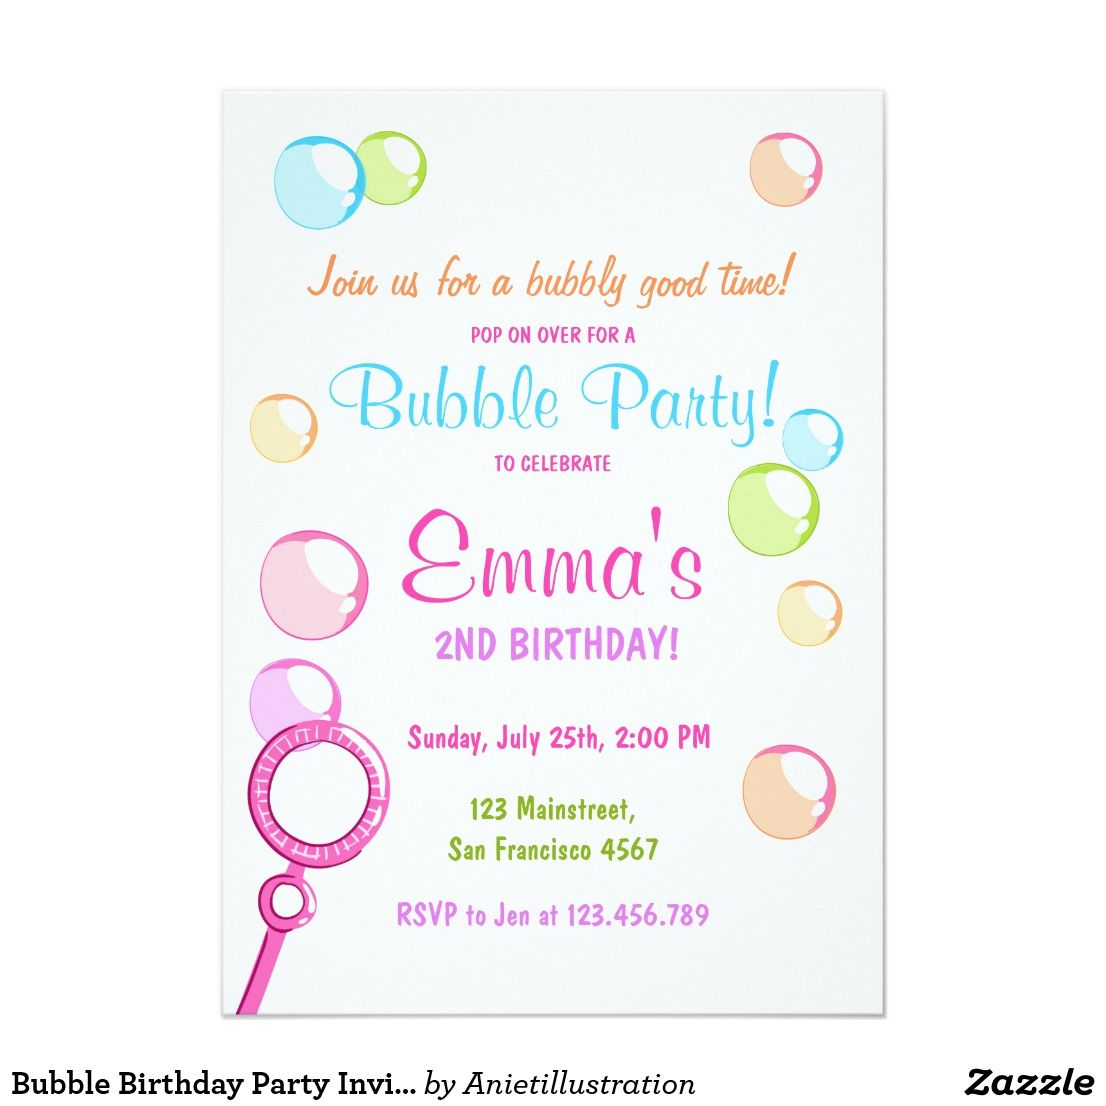 Bubble Birthday Party Invitation POP Birthday Girl | Bubble party ...